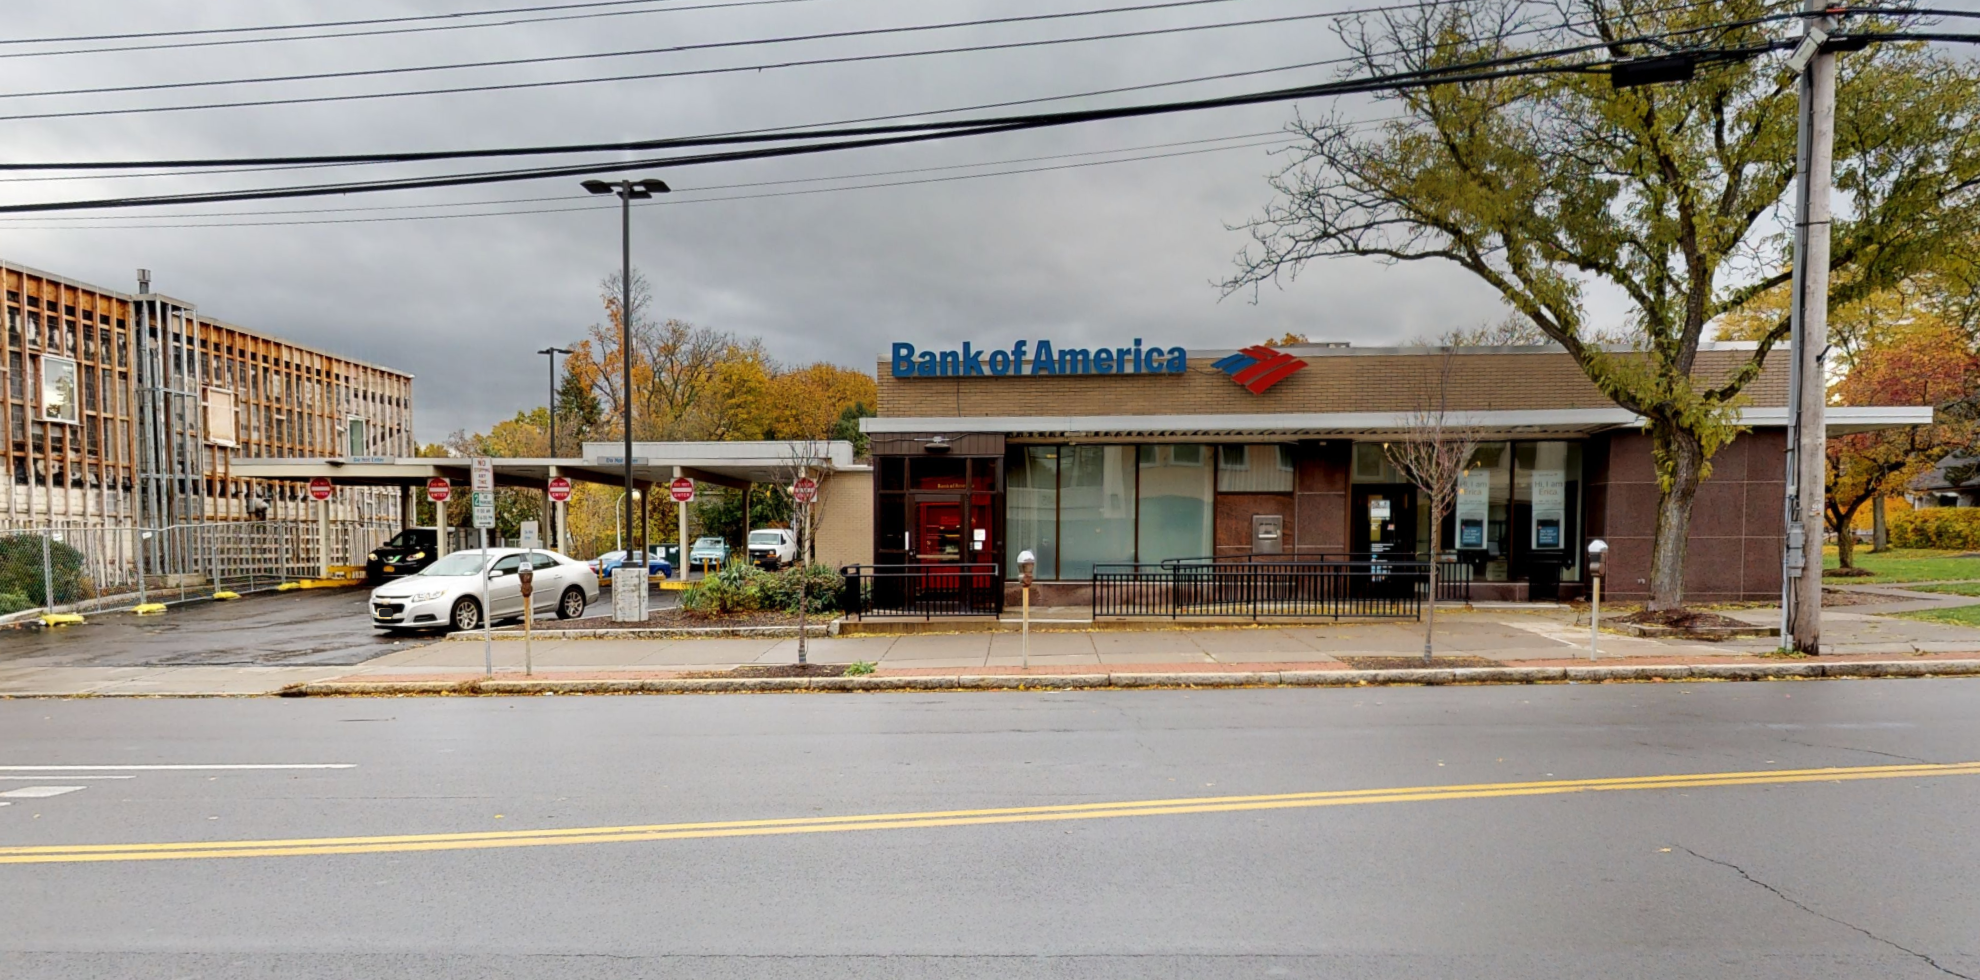 Bank of America financial center with drive-thru ATM | 2334 James St, Syracuse, NY 13206